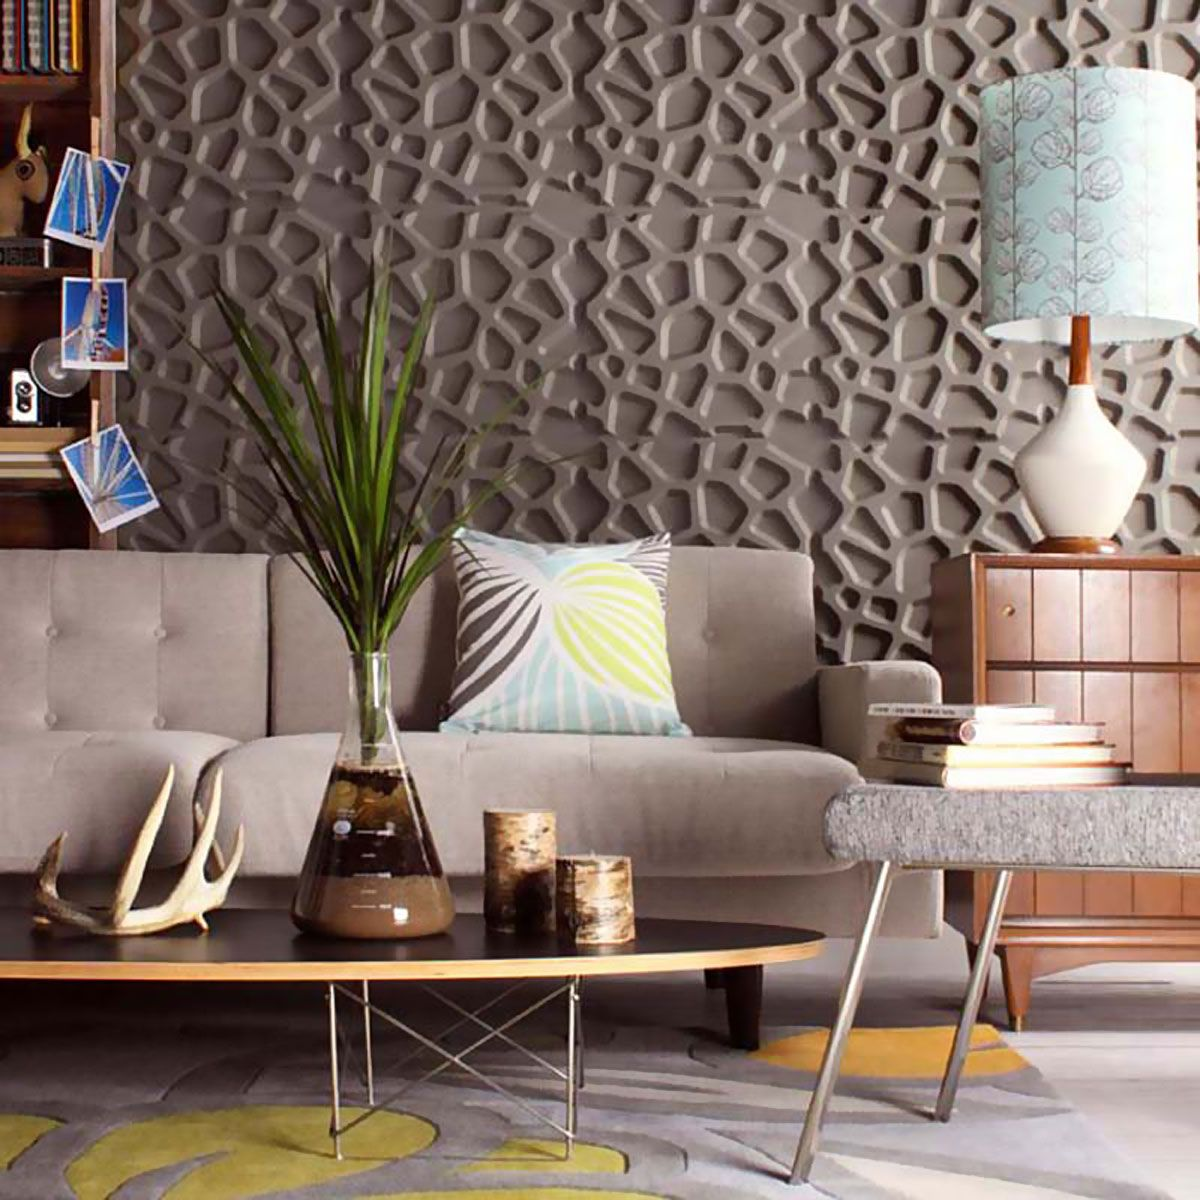 Pin On 3d Wall Panels #wall #panel #design #for #living #room